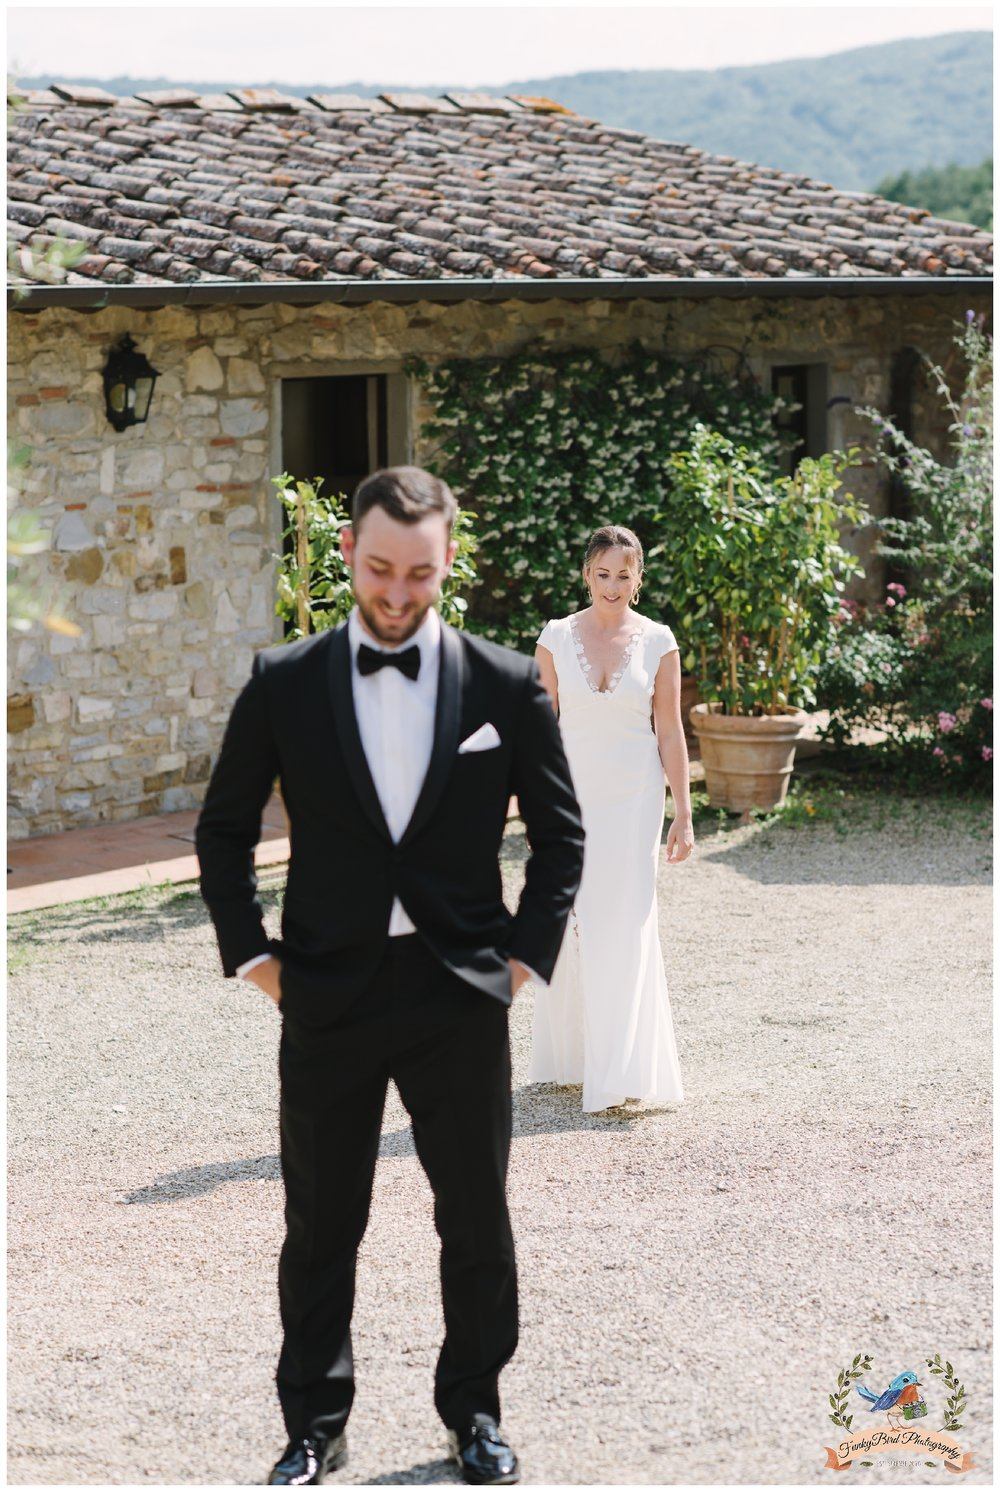 Wedding_Photographer_Tuscany_Italy_0008.jpg